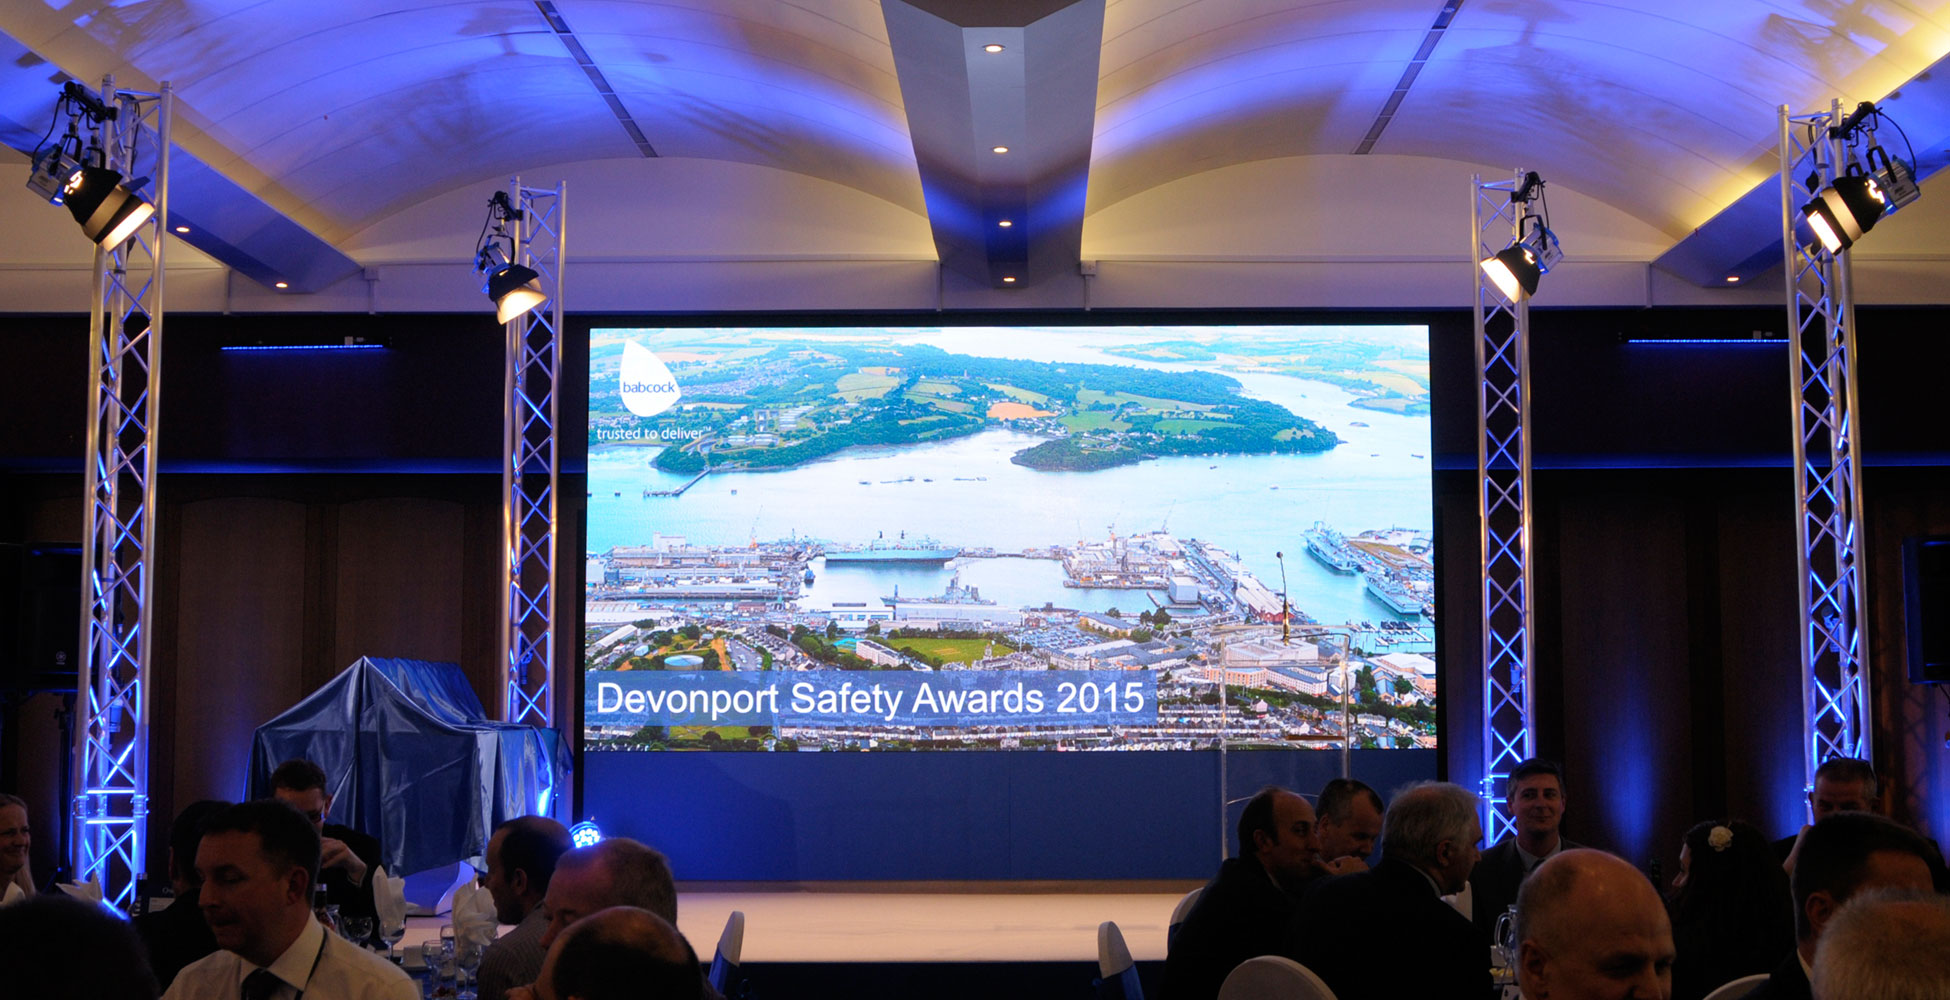 PL1 Events - Conference Events Plymouth Devon South West UK